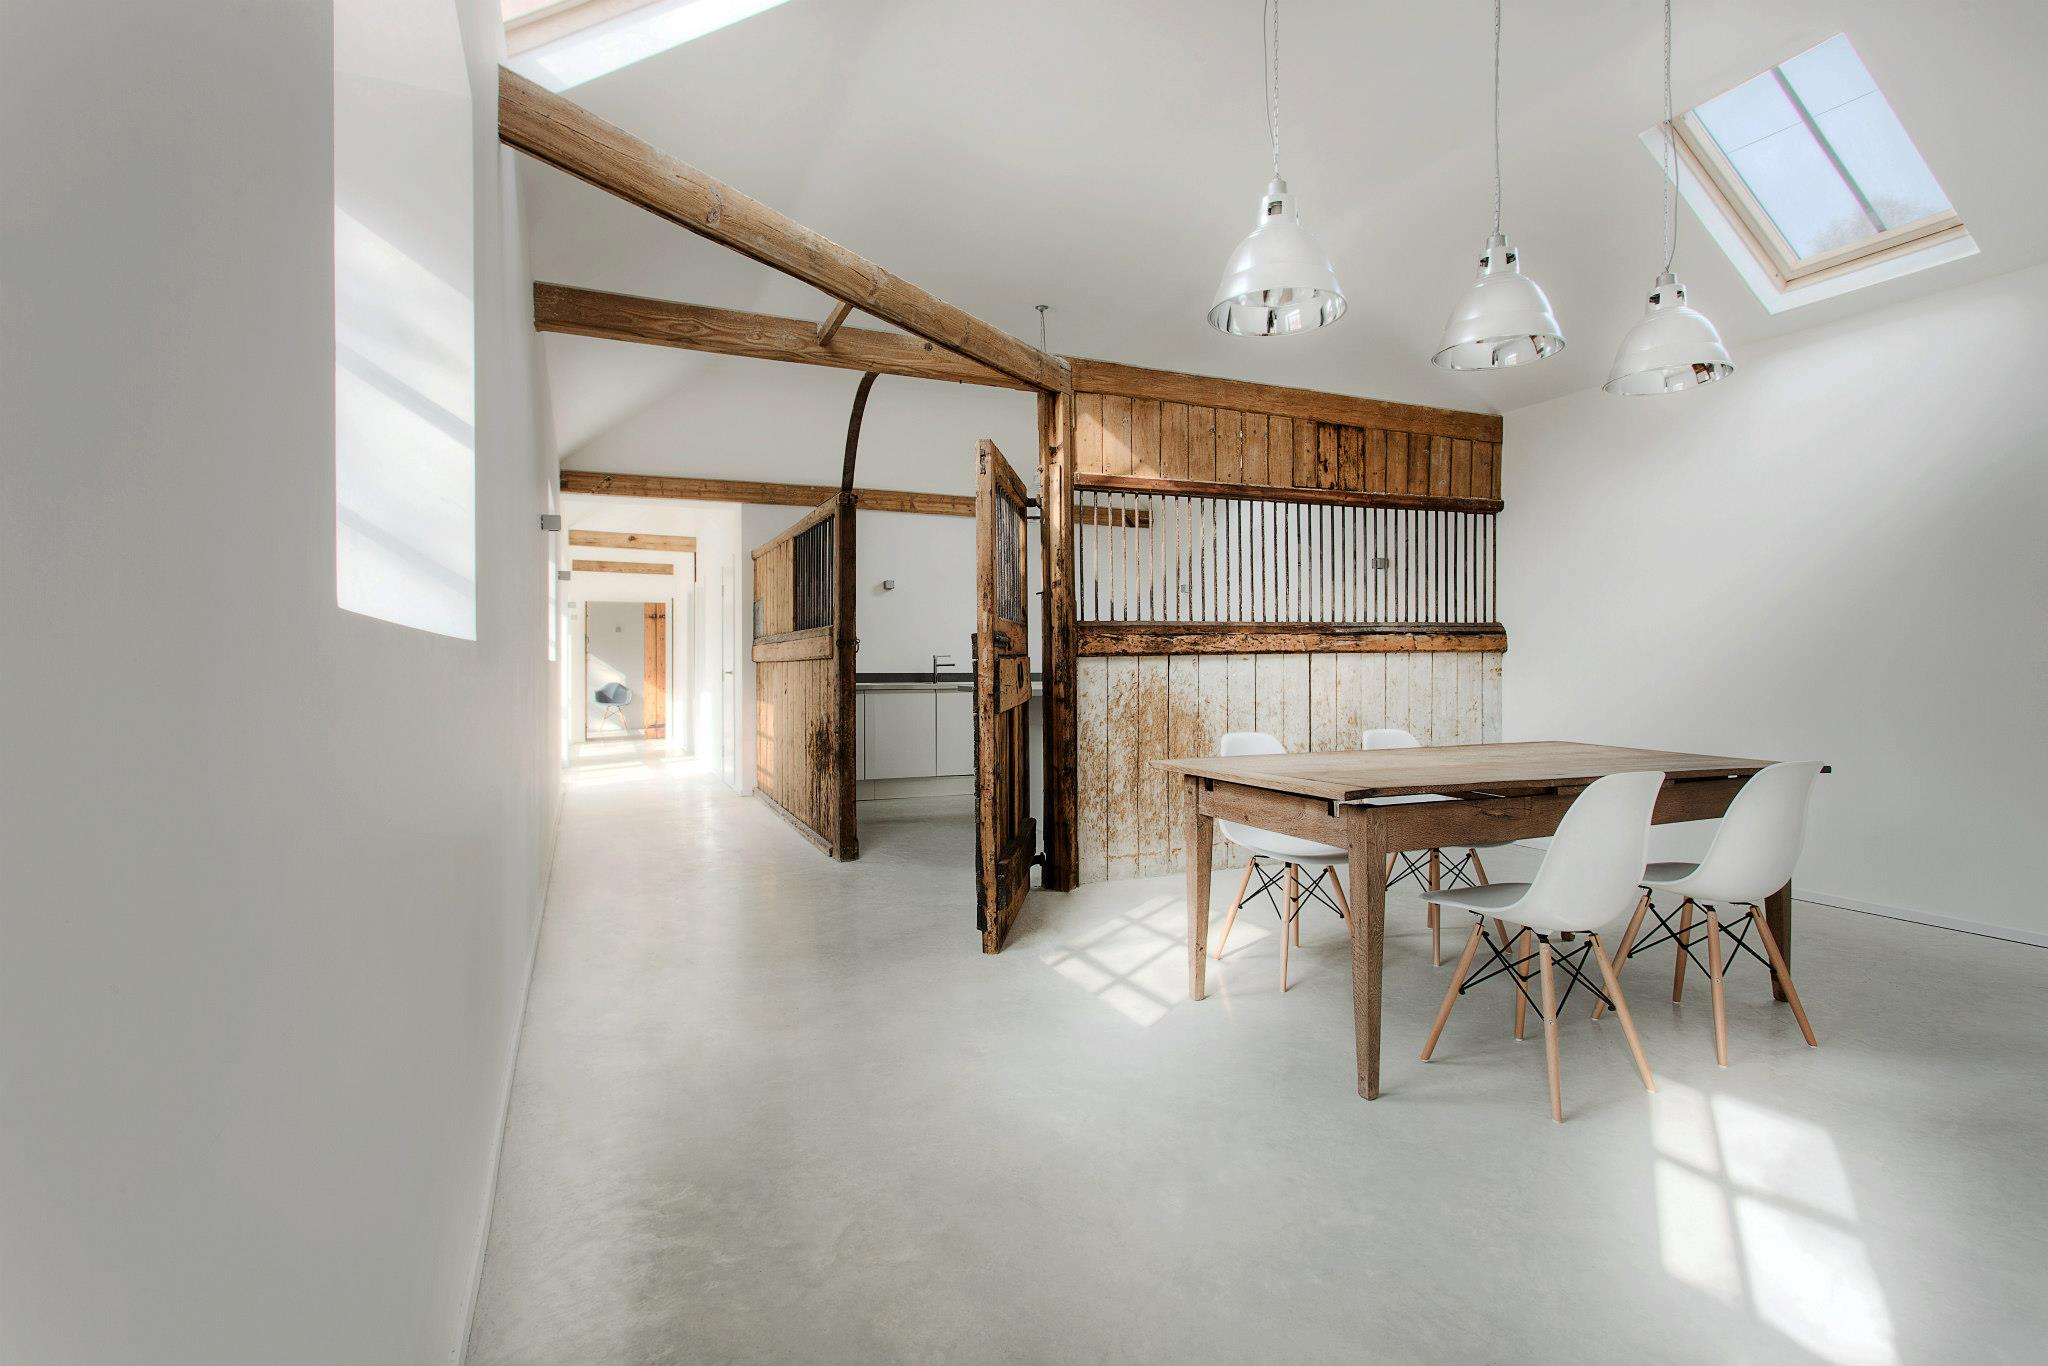 the stables by ar design studio6 Old Stables Turned into Contemporary Home